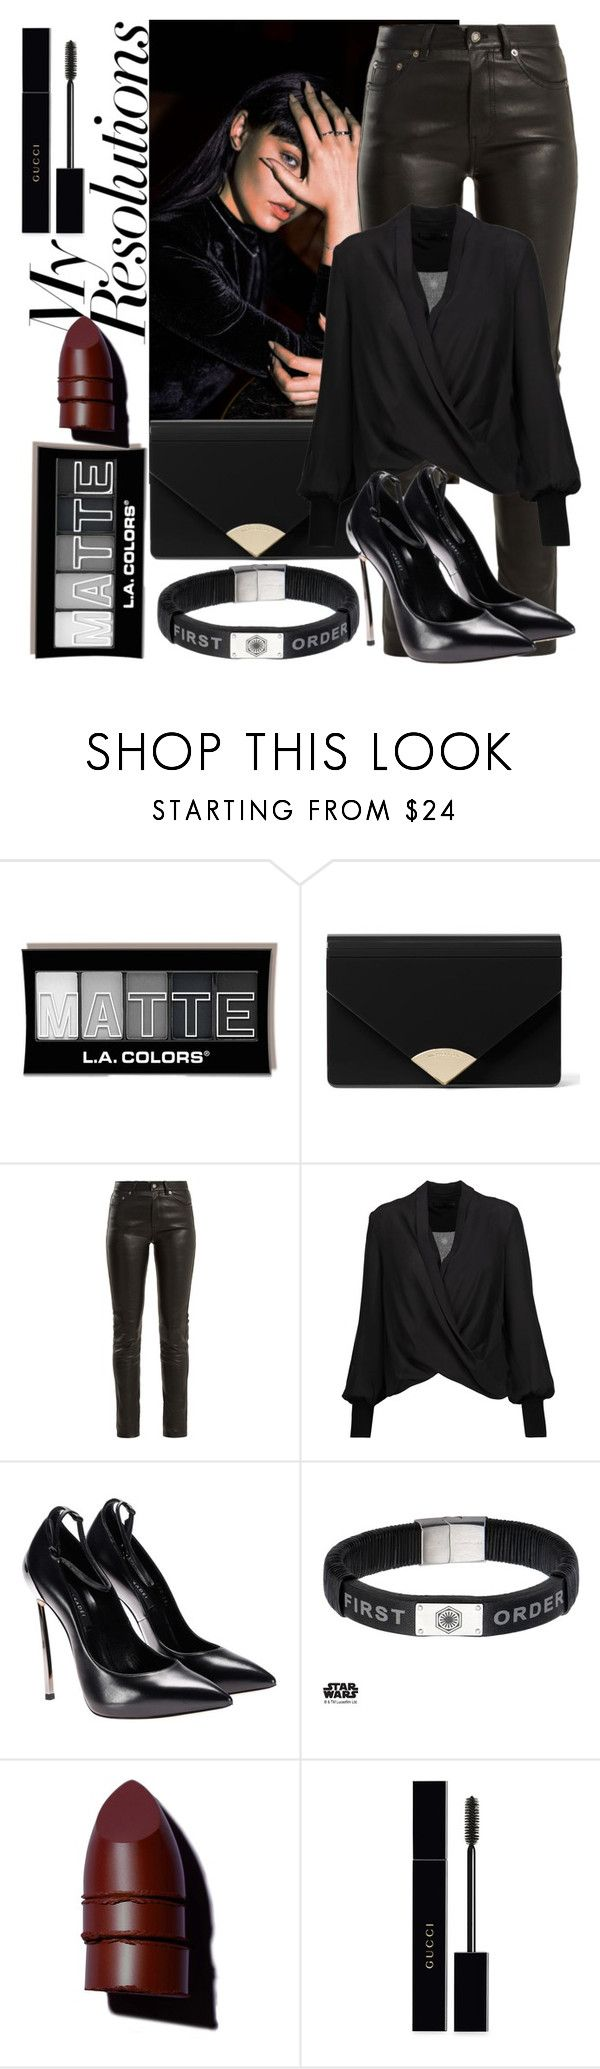 """""""Joining the Dark Side #PolyPresents: New Year's Resolutions"""" by dorasylvia ❤ liked on Polyvore featuring MICHAEL Michael Kors, Yves Saint Laurent, Alice + Olivia, Episode, Anastasia Beverly Hills, Gucci, contestentry and polyPresents"""